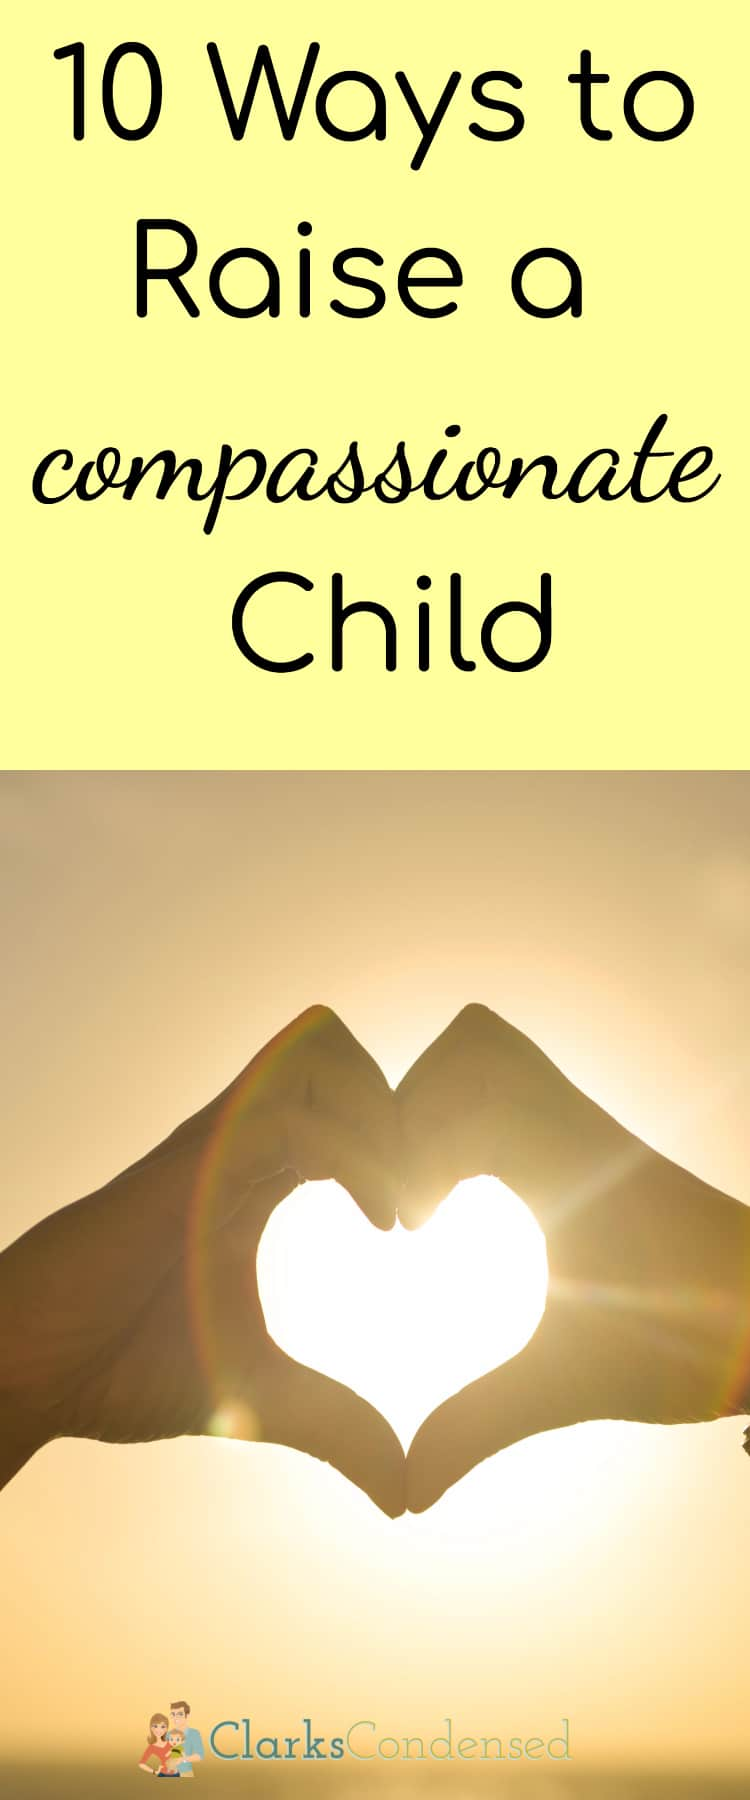 10 Ways to Raise a Compassionate Child / Compassion / Parenting / School